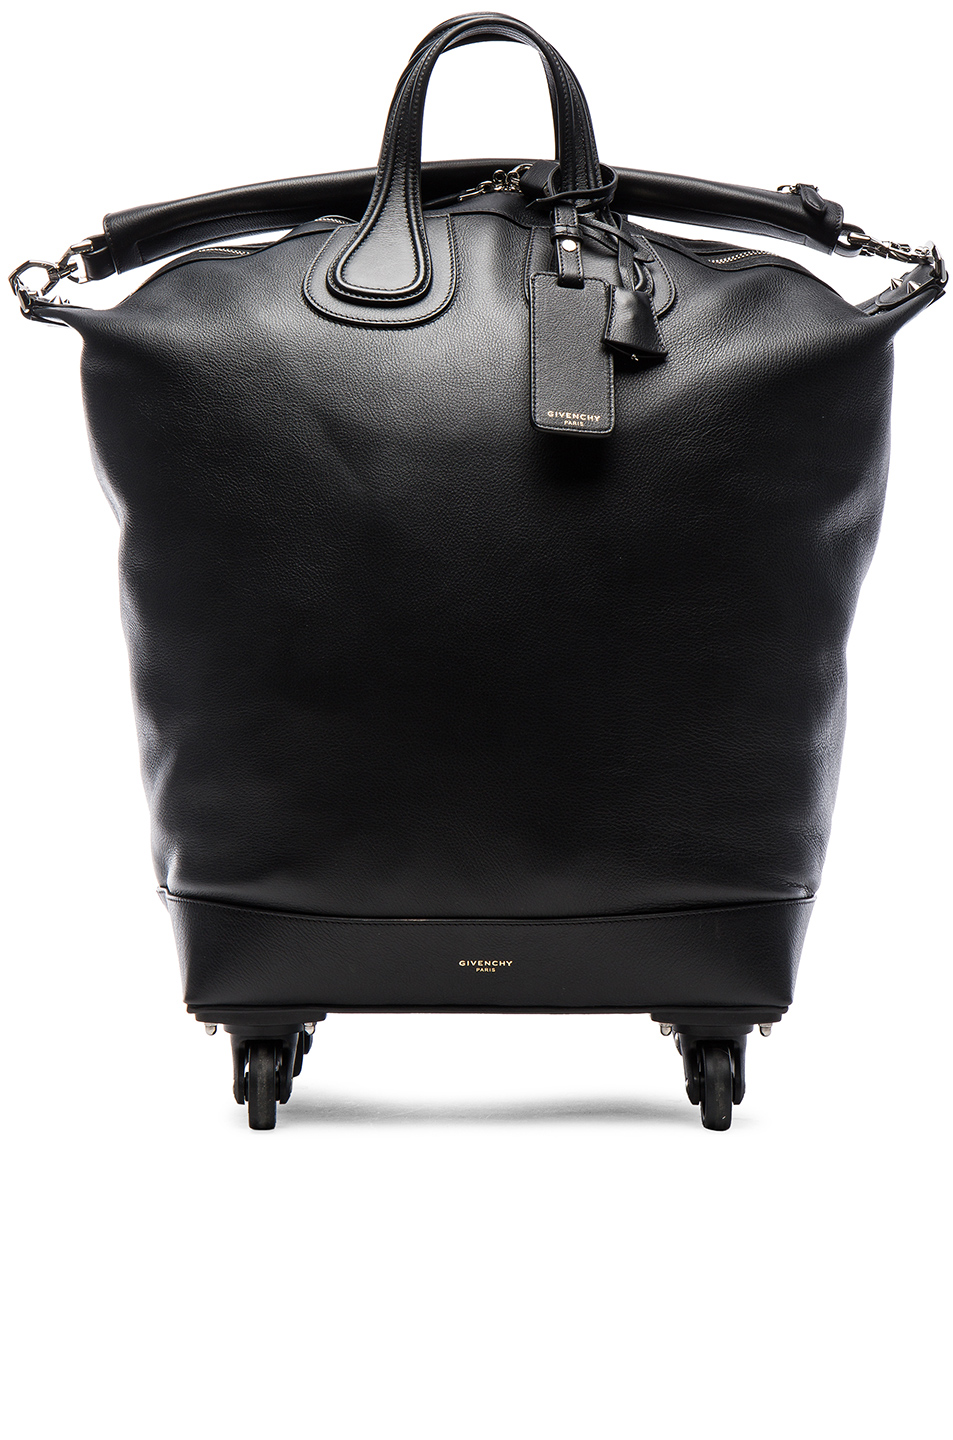 Givenchy Nightingale Trolley Bag in Black